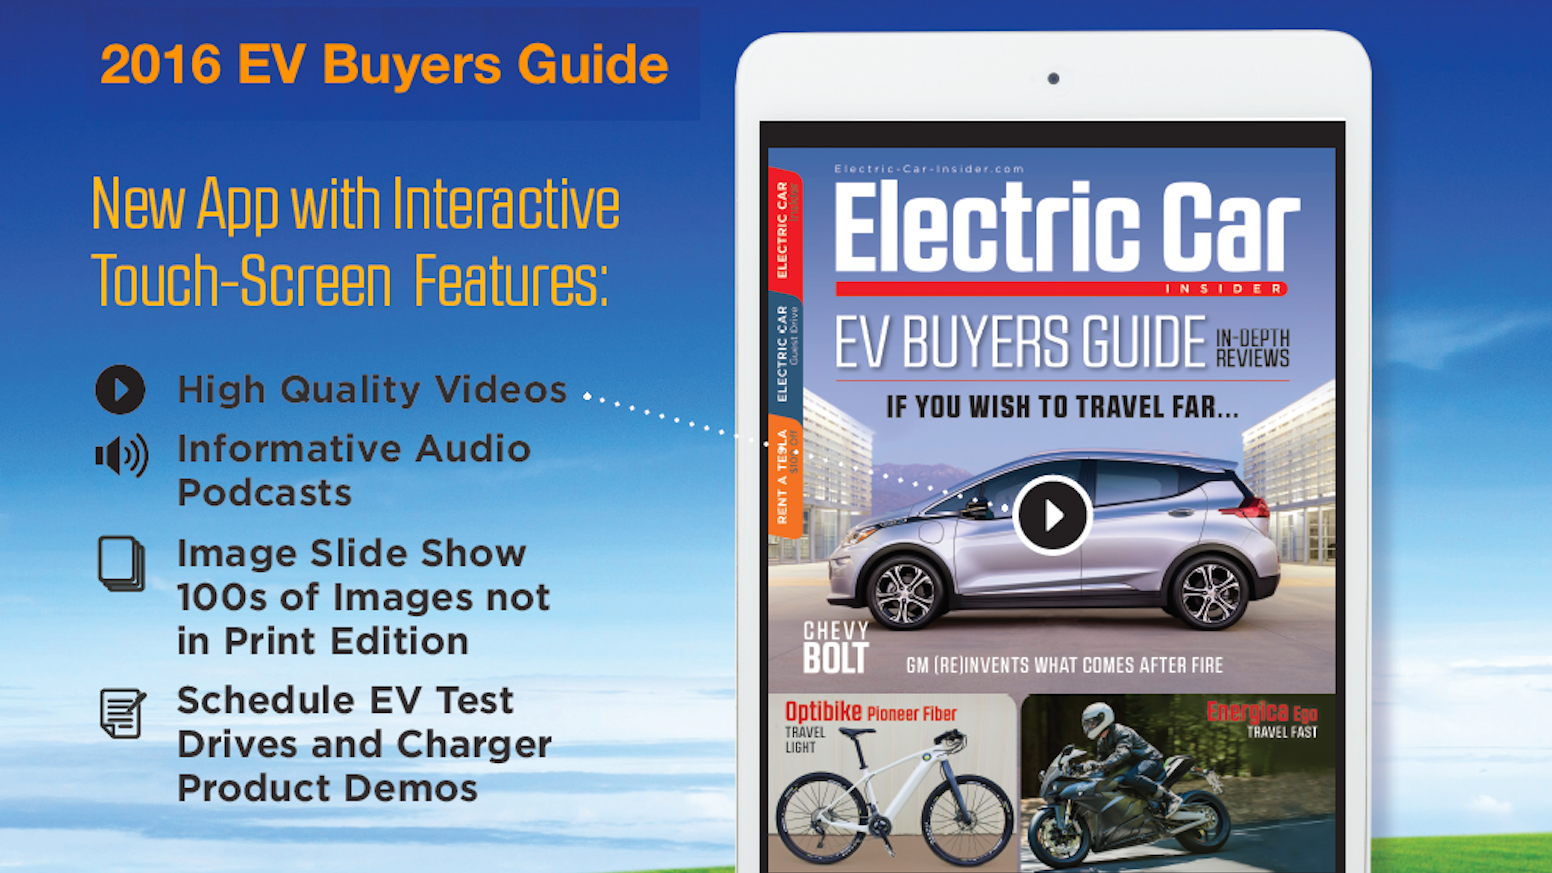 Electric Car Insider - Interactive App for Mobile and Tablet by